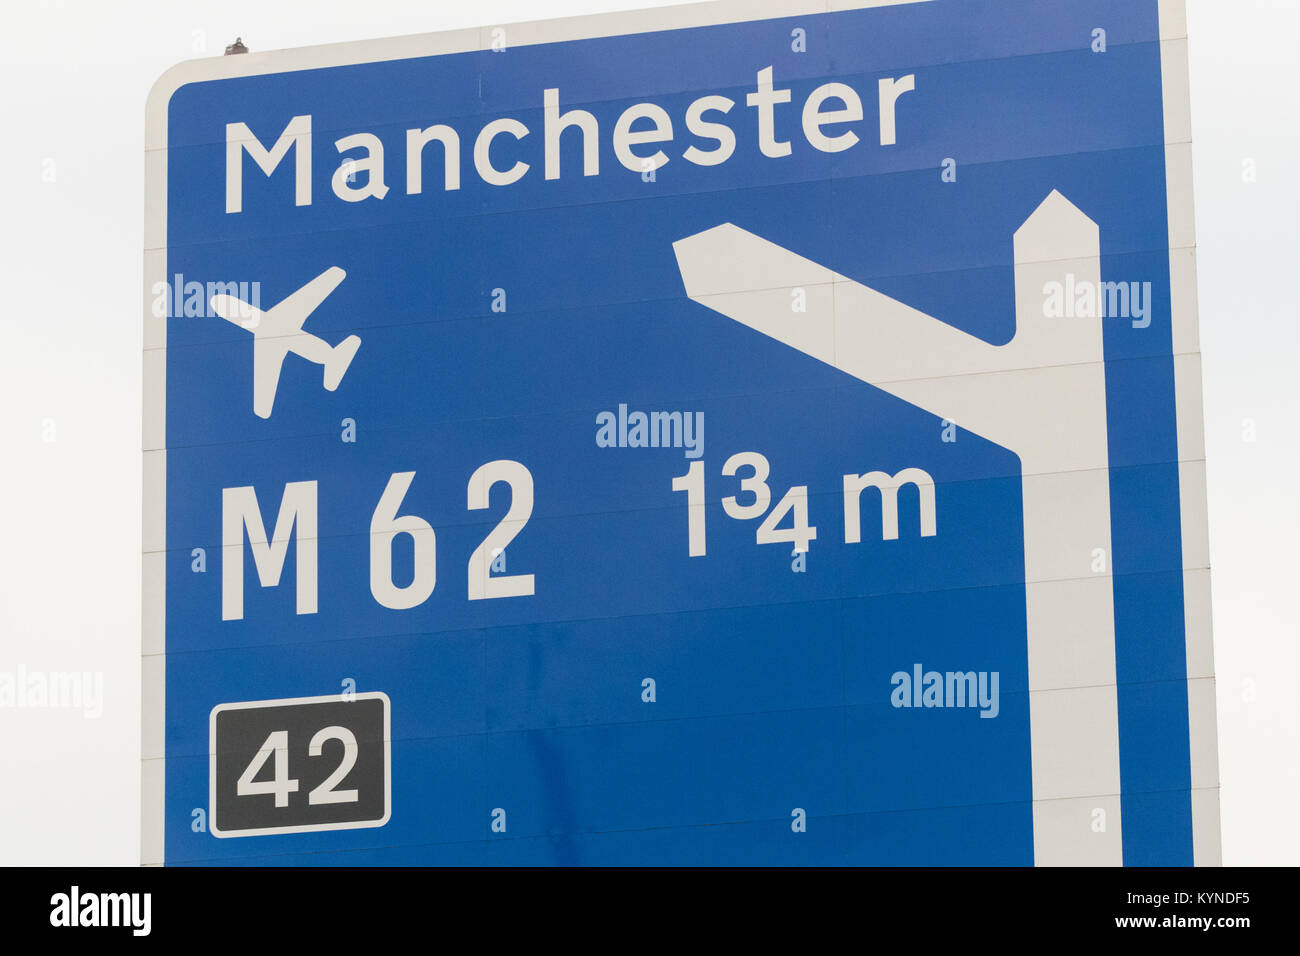 Manchester airport stock photos manchester airport stock images manchester airport m62 sign leading off the m1 motorway uk stock image kristyandbryce Image collections